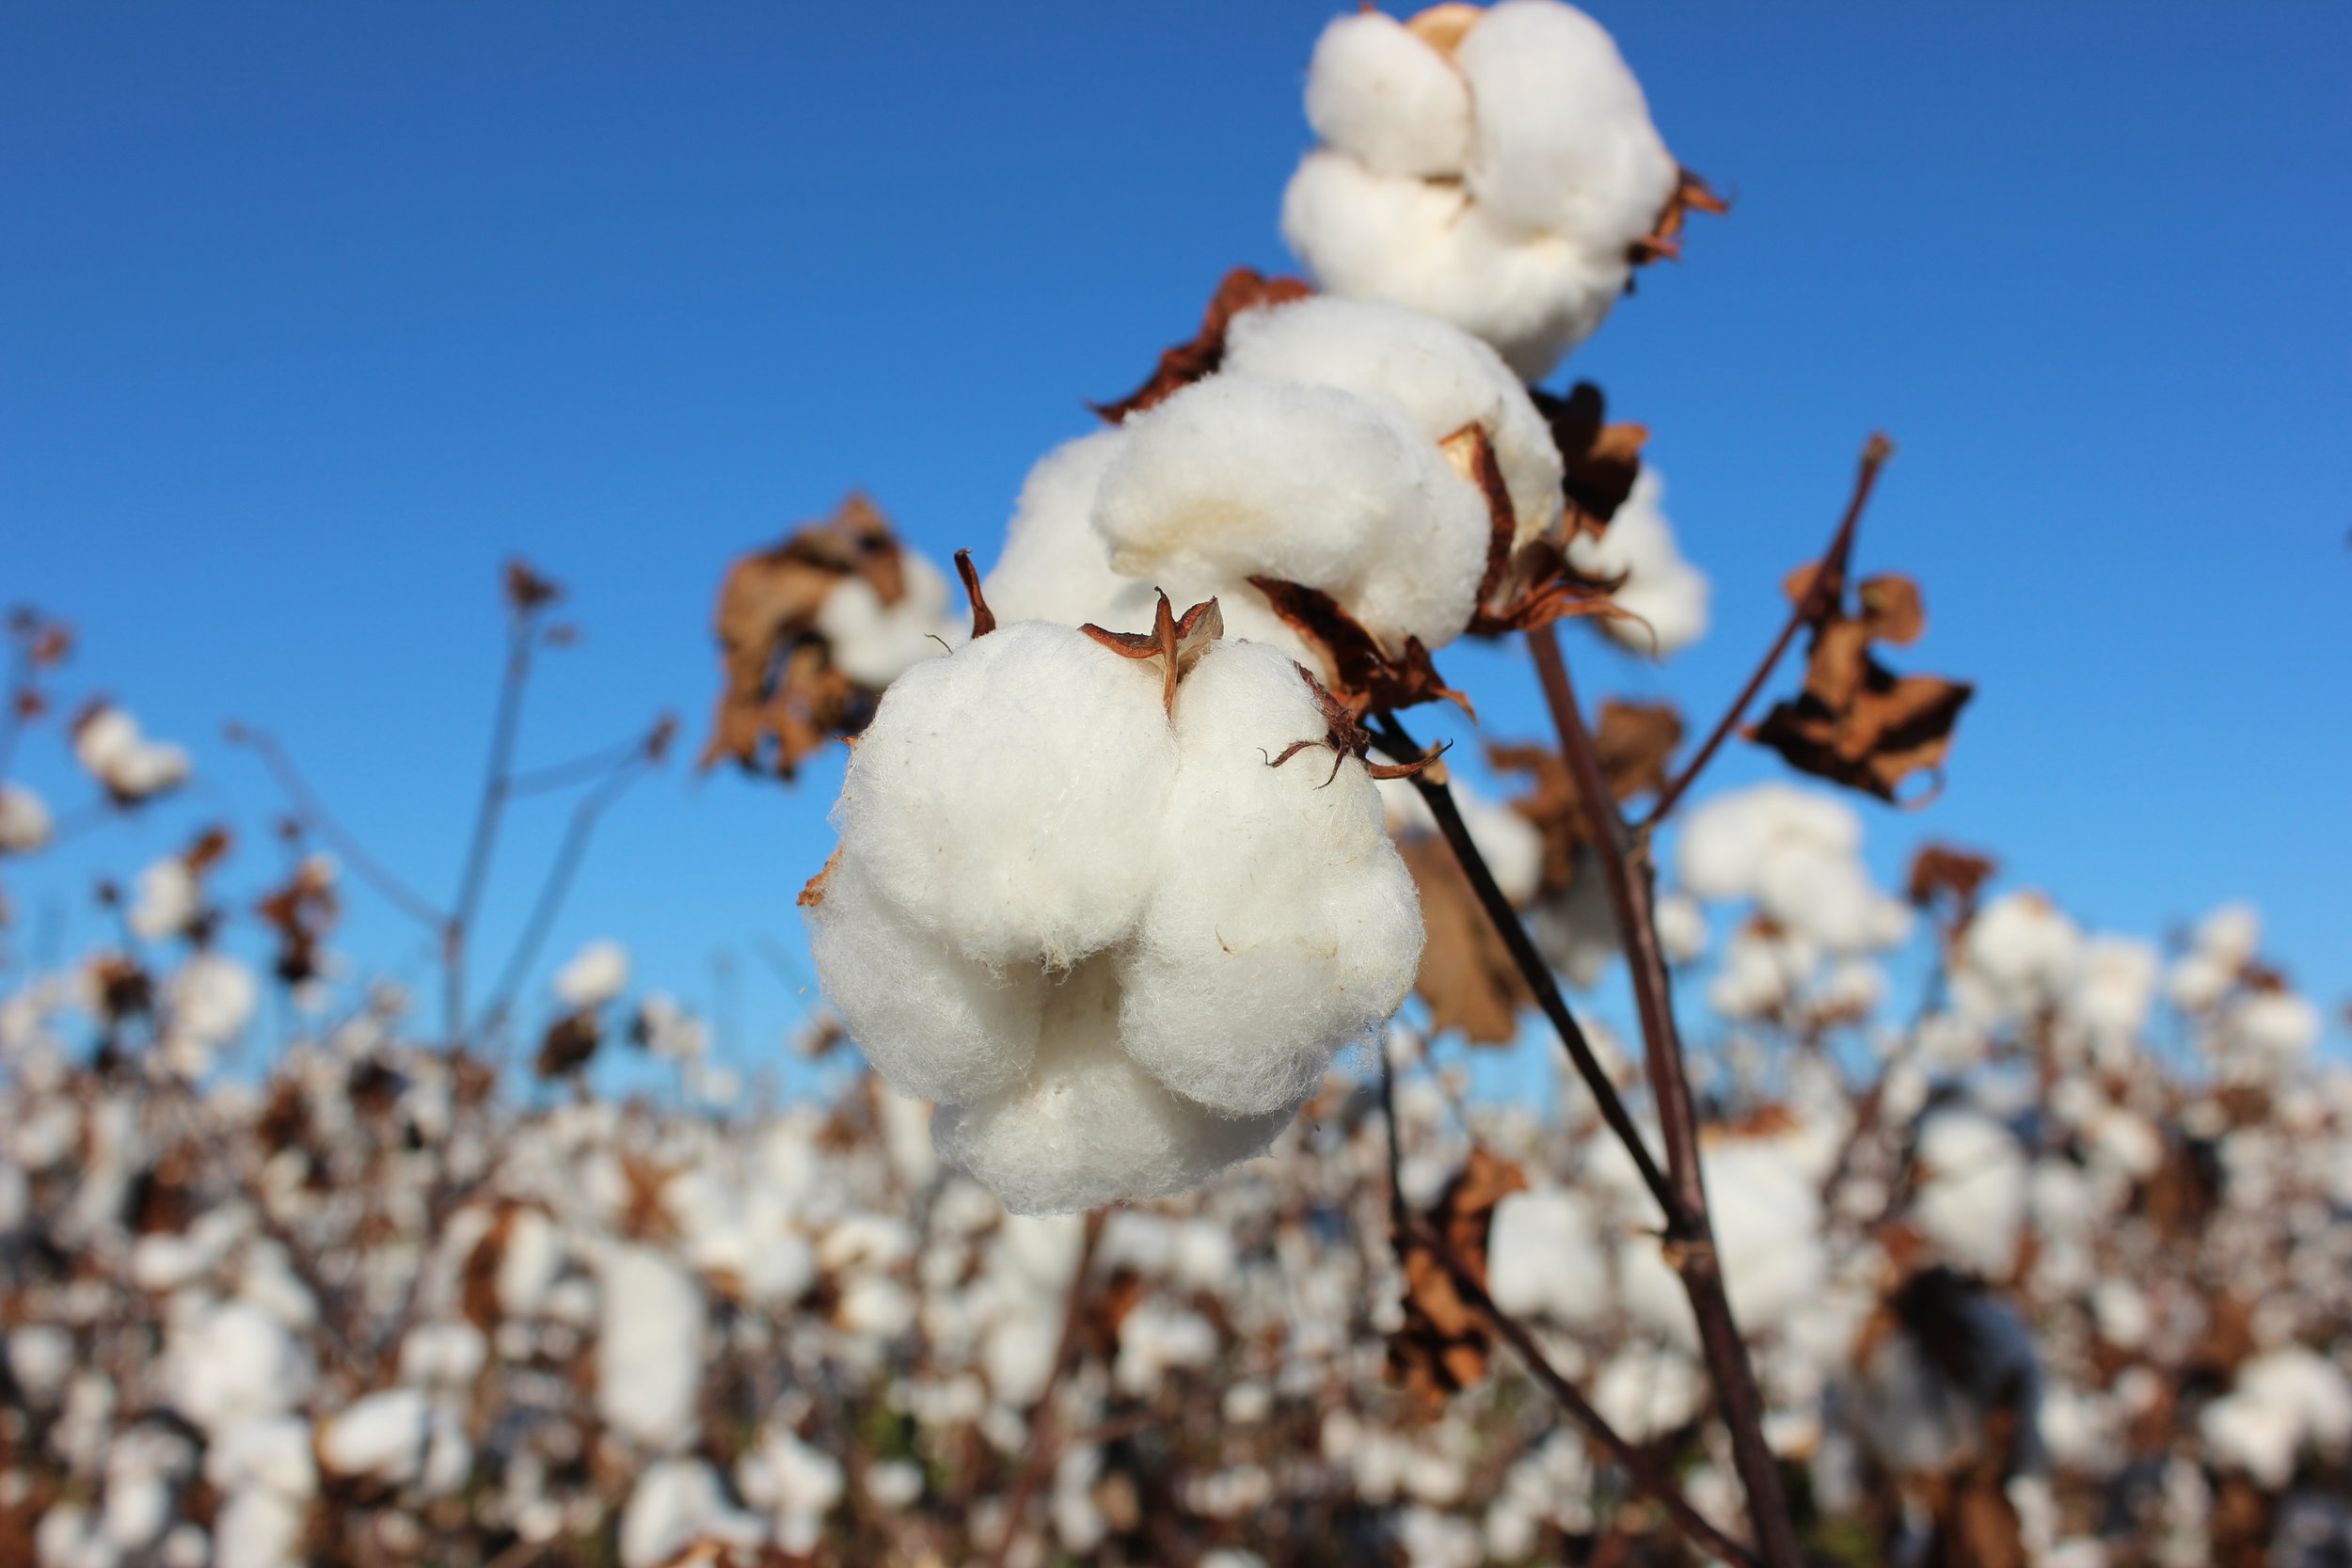 That's a lot o' cotton – Place Value Math Skills